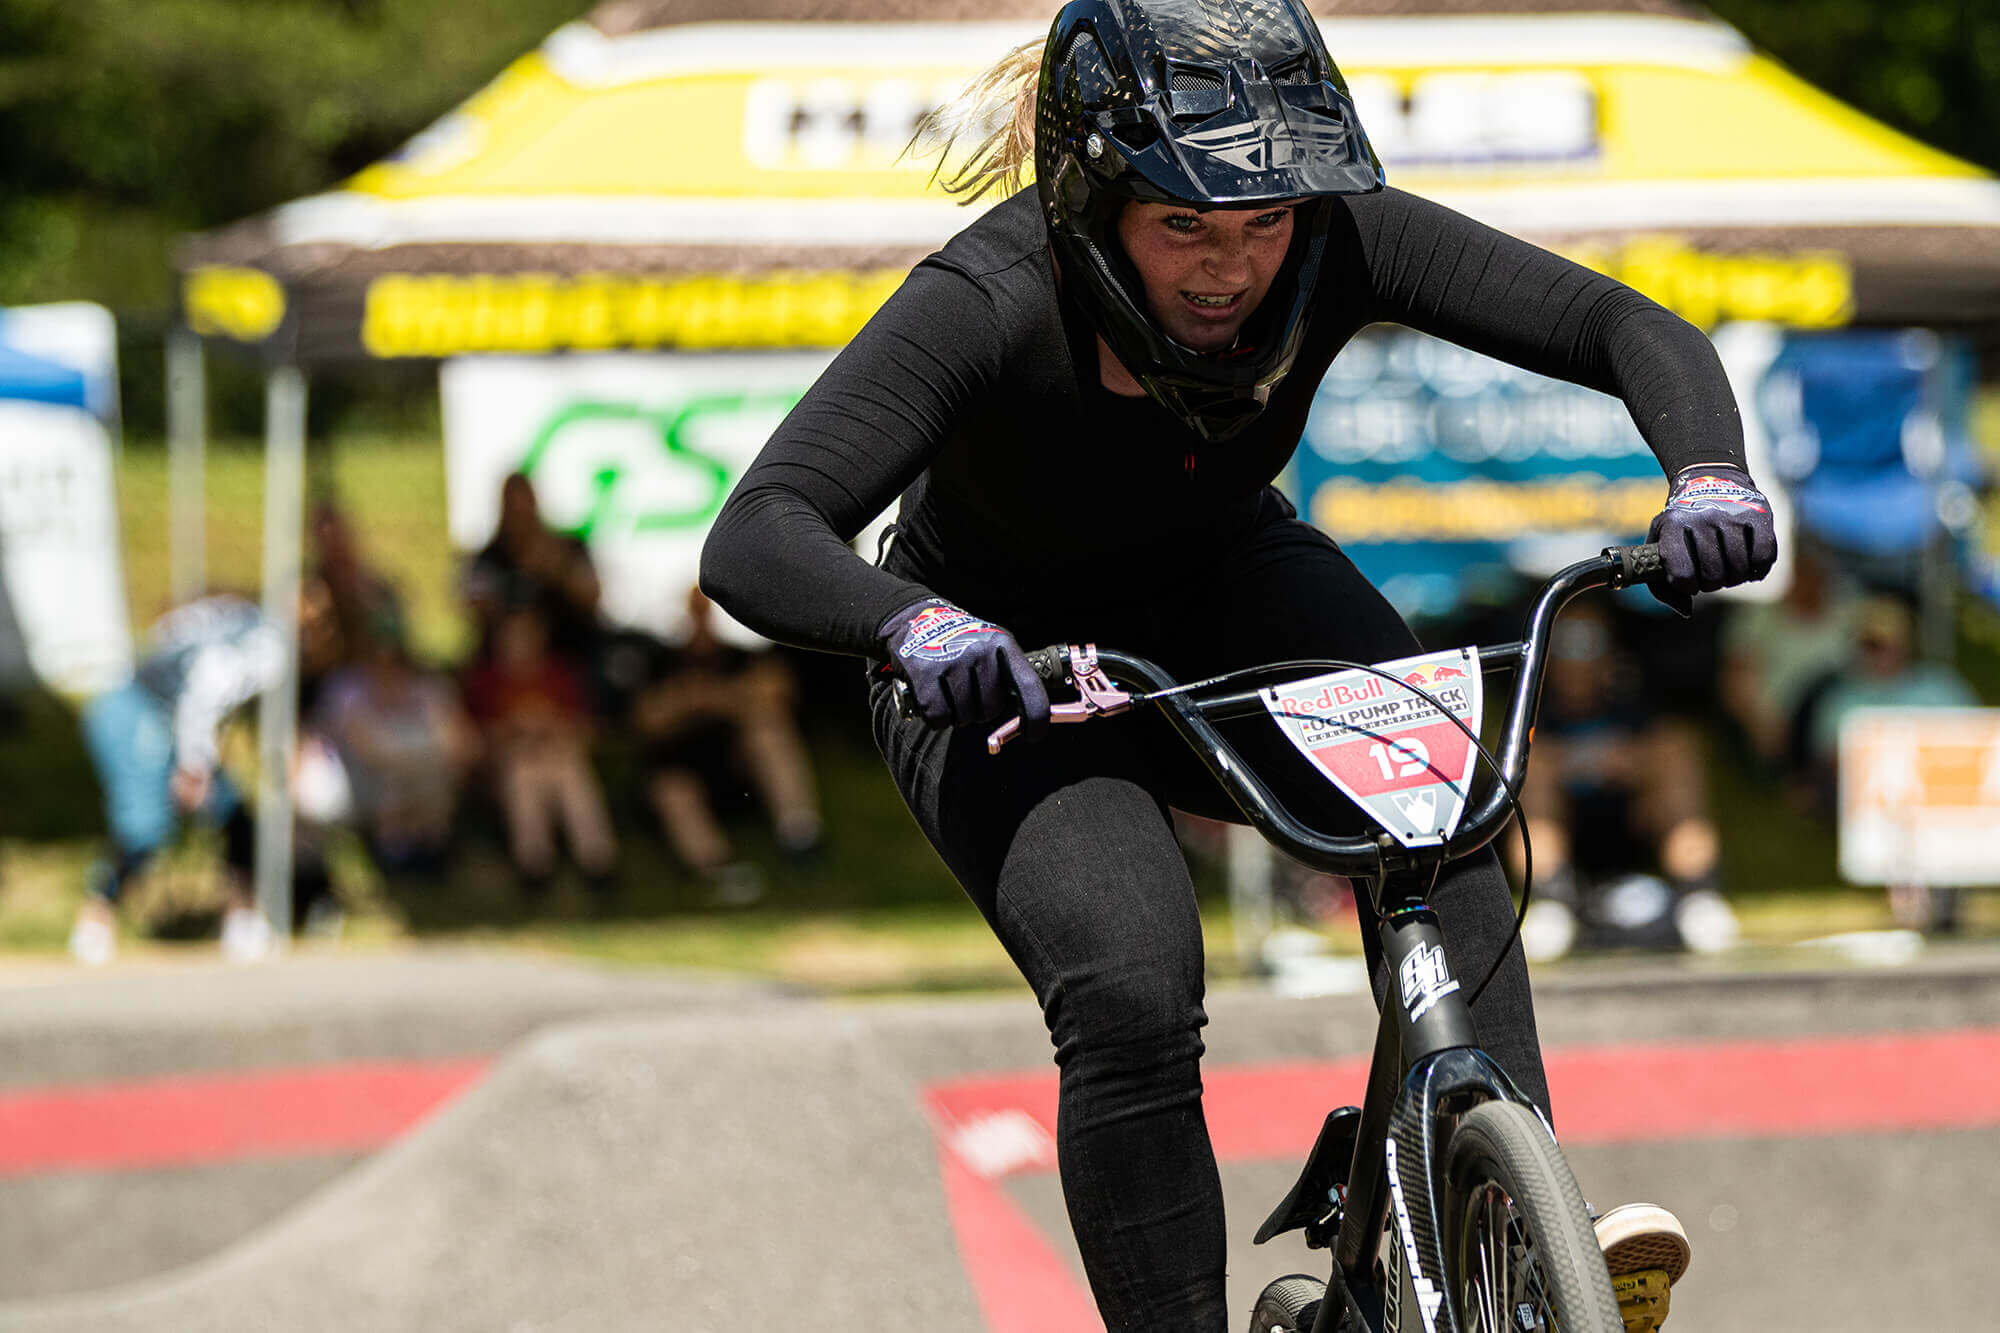 Red Bull Pump Track Qualifier Gaston County May 2021 - Brian Hall - ATL-0013